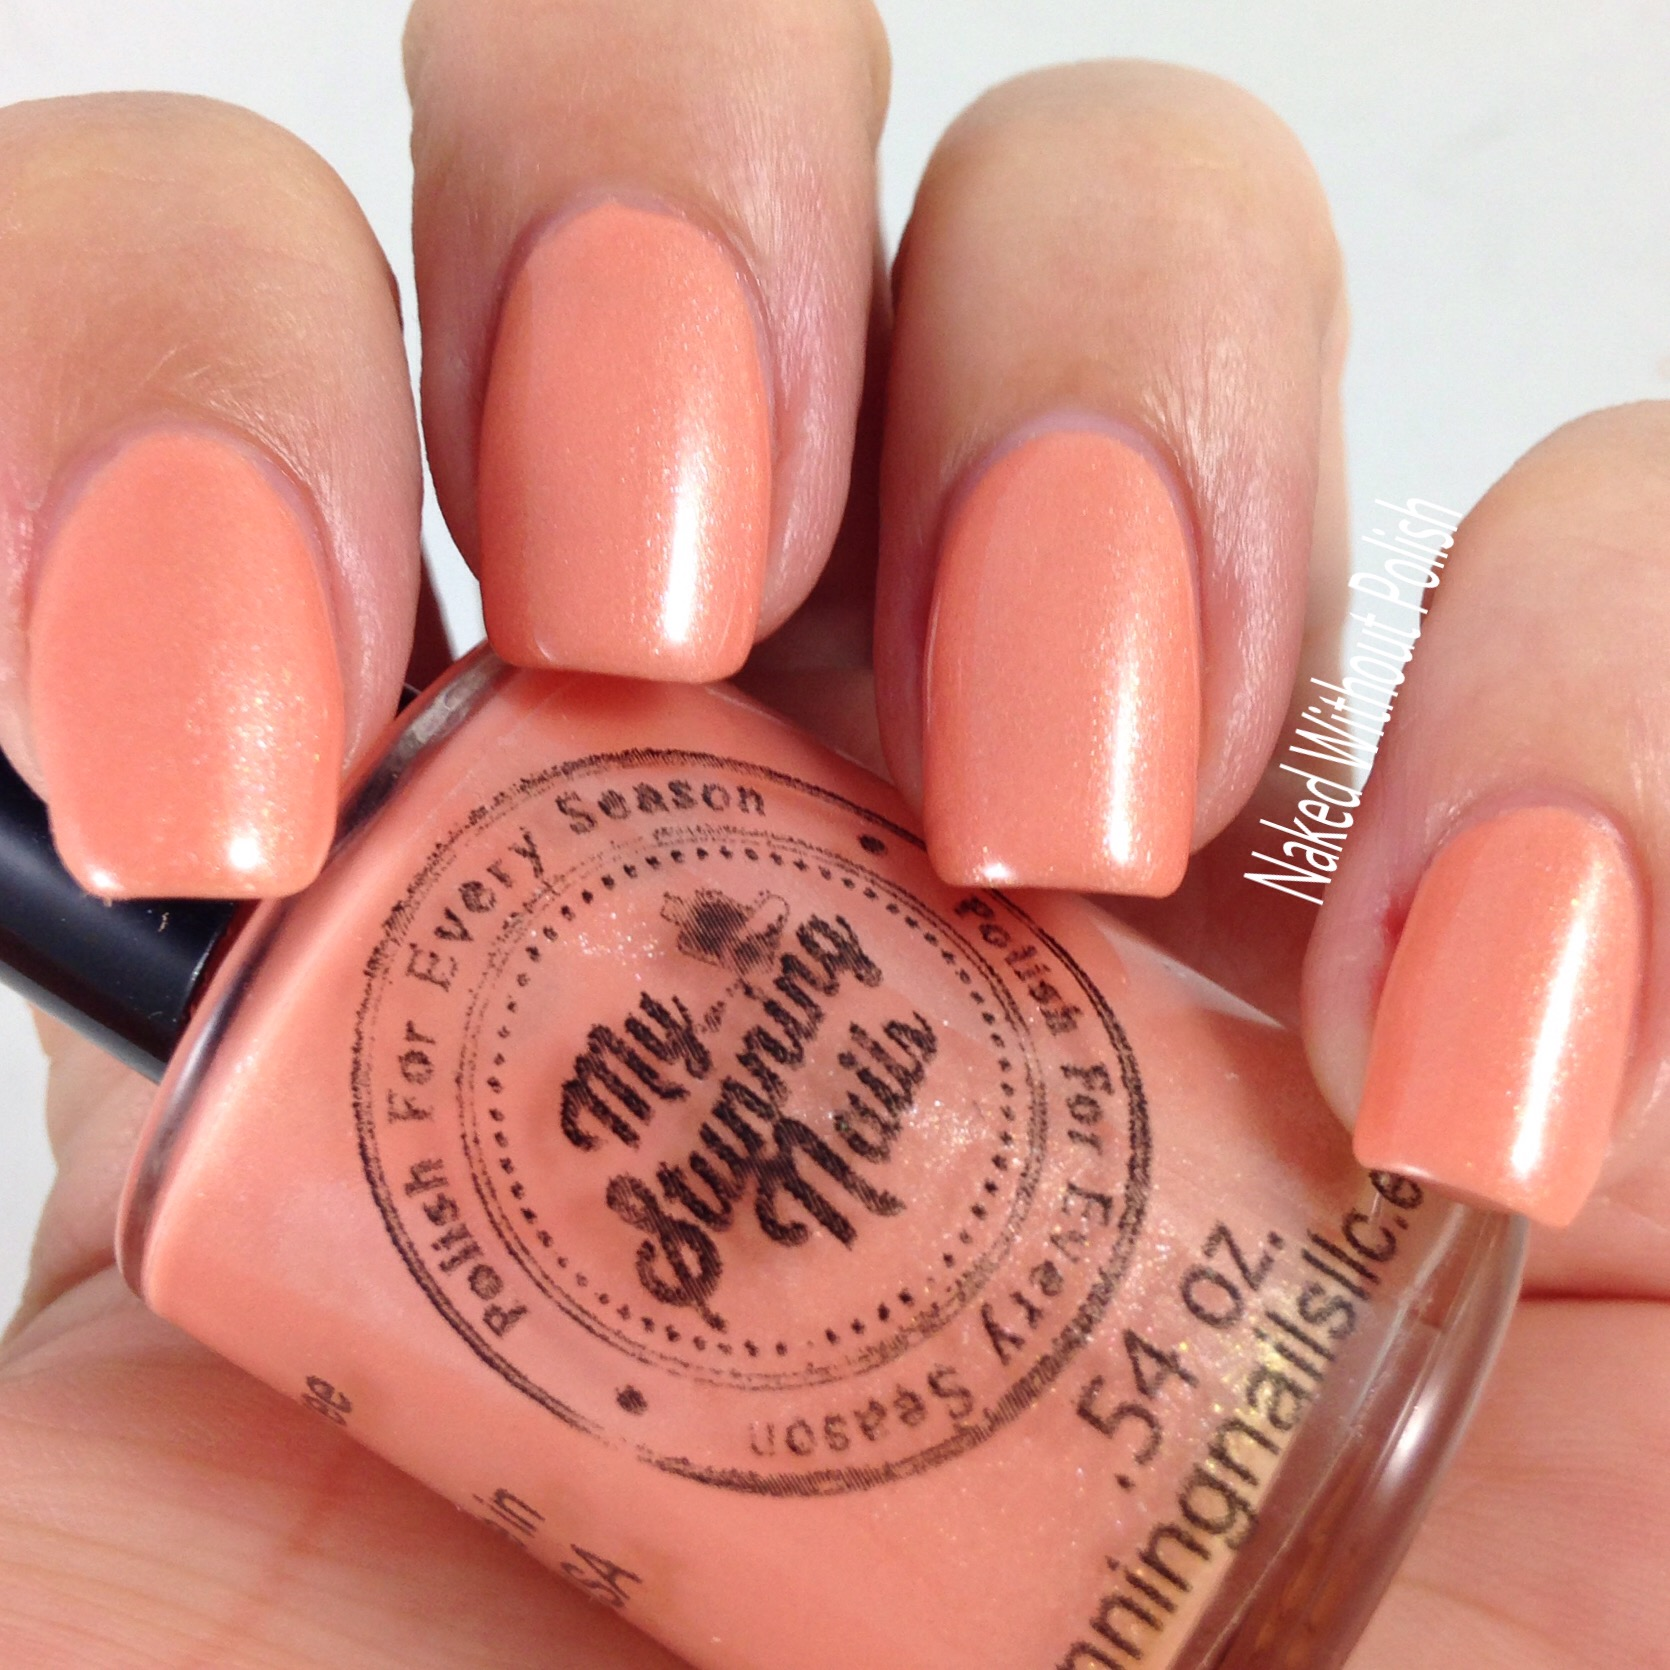 Polish-Pickup-My-Stunning-Nails-Soft-Fire-6